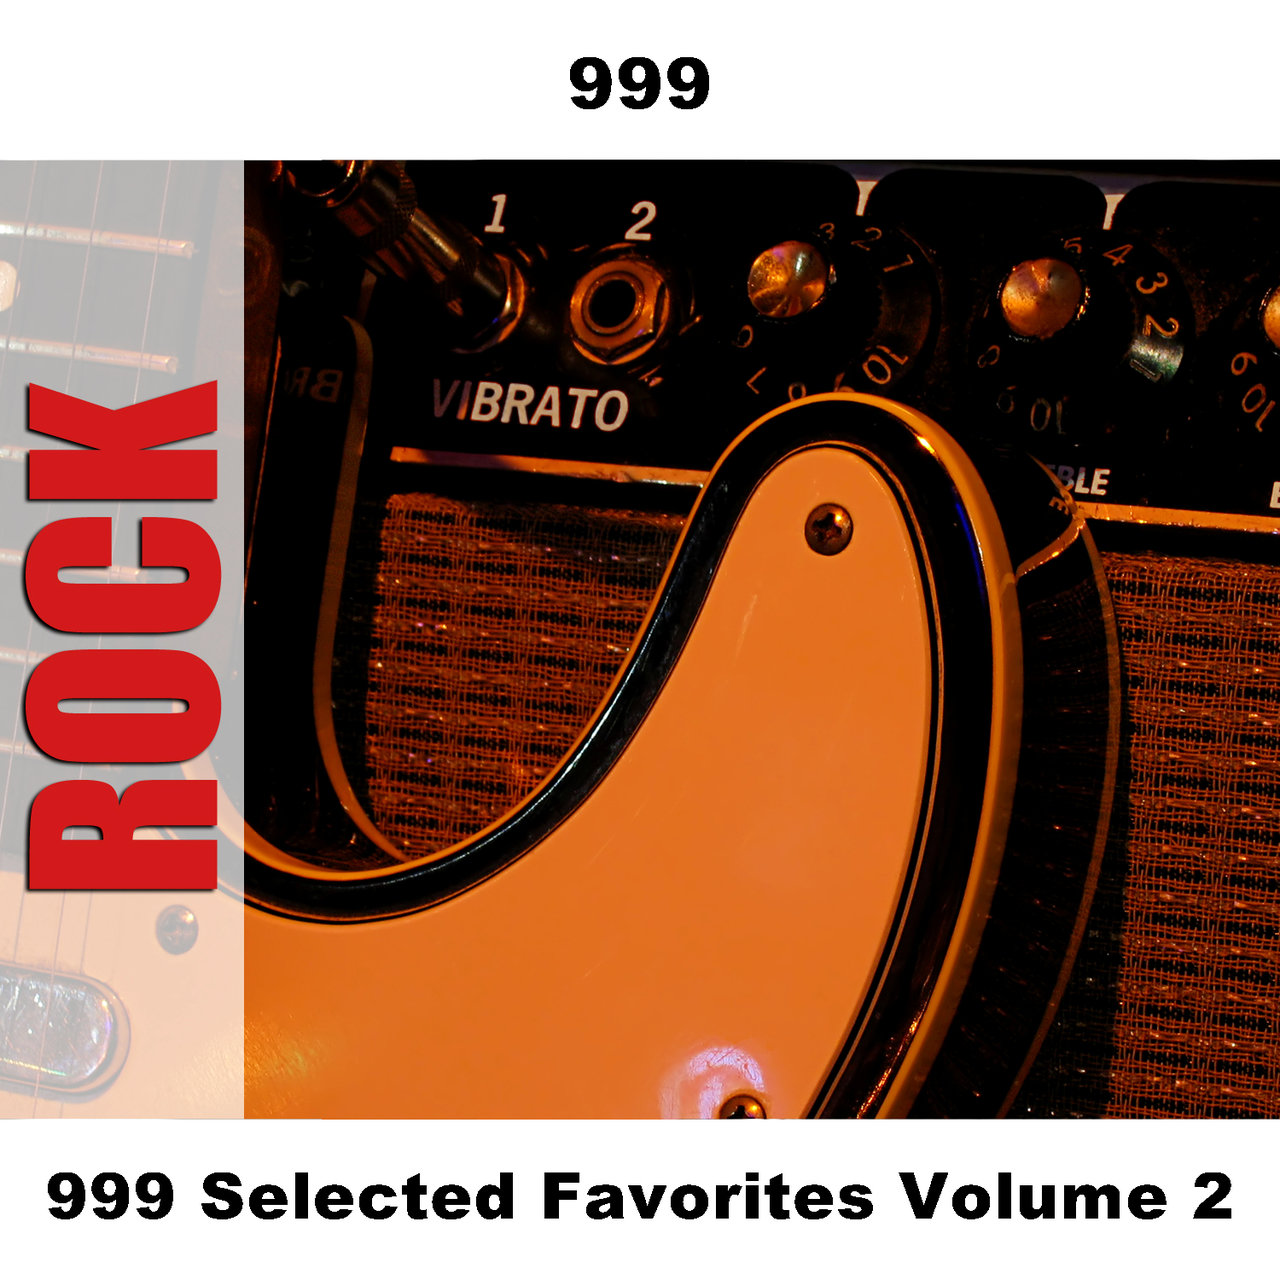 999 Selected Favorites Volume 2